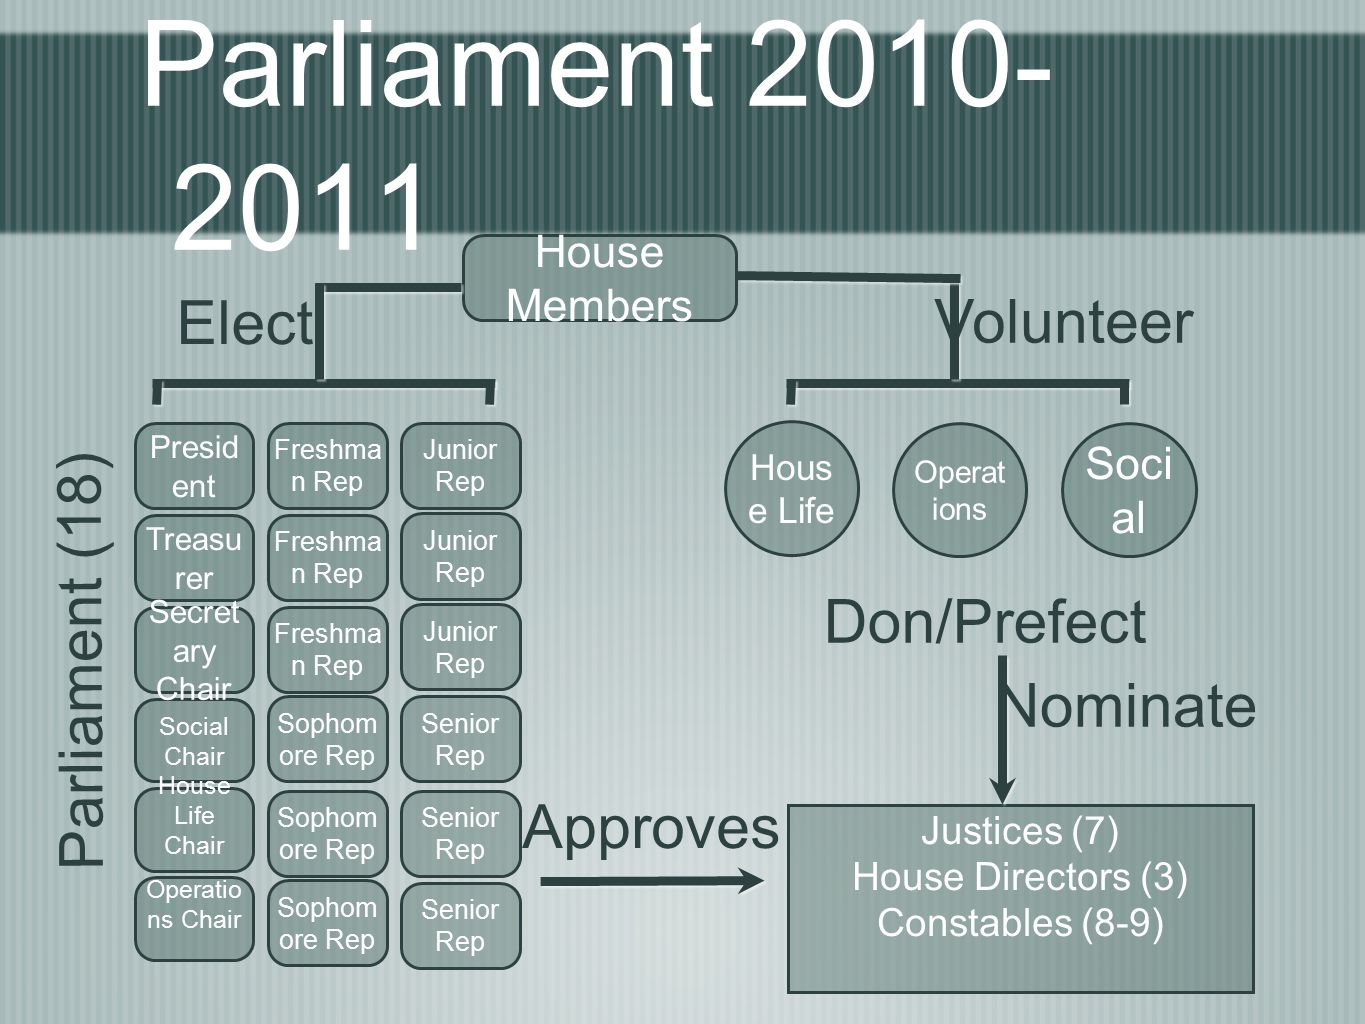 Parliament 2010- 2011 House Members Presid ent Treasu rer Social Chair Secret ary Chair House Life Chair Operatio ns Chair Freshma n Rep Sophom ore Rep Junior Rep Senior Rep Elect Soci al Operat ions Hous e Life Volunteer Parliament (18) Justices (7) House Directors (3) Constables (8-9) Approves Don/Prefect Nominate